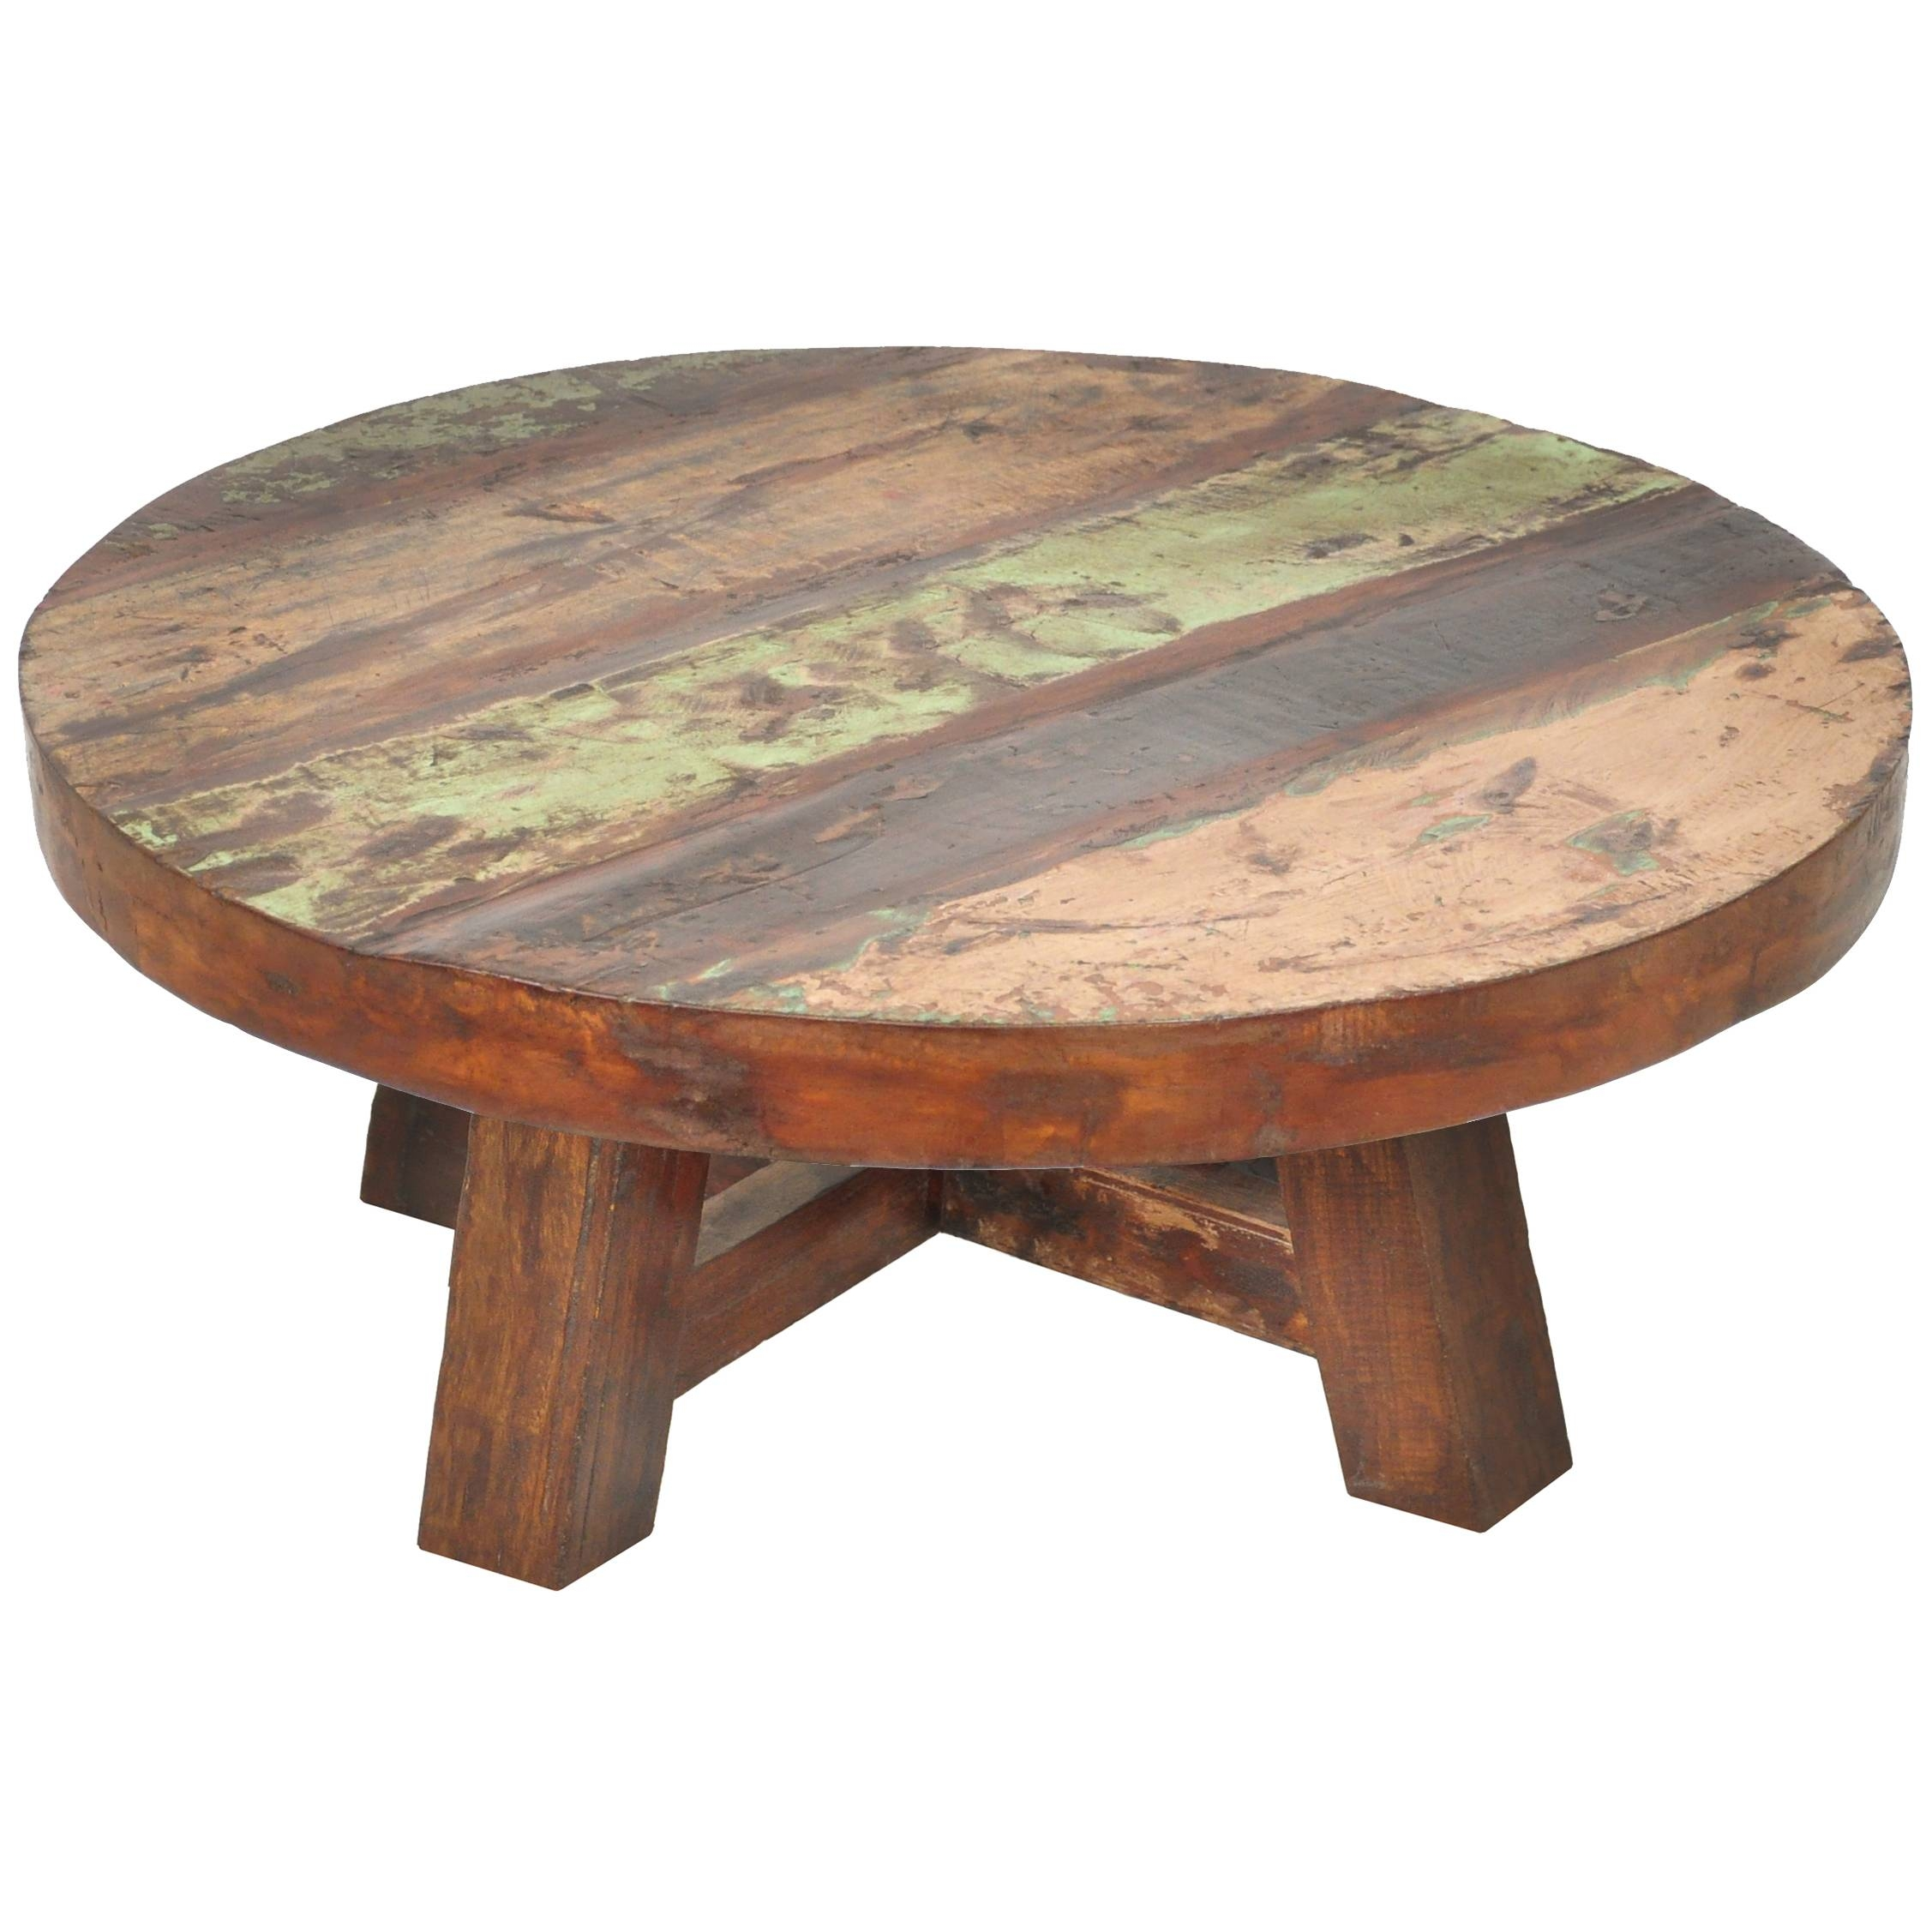 Coffee Table: Stylish Round Wooden Coffee Table Design Ideas With Regard To Small Round Coffee Tables (View 9 of 30)